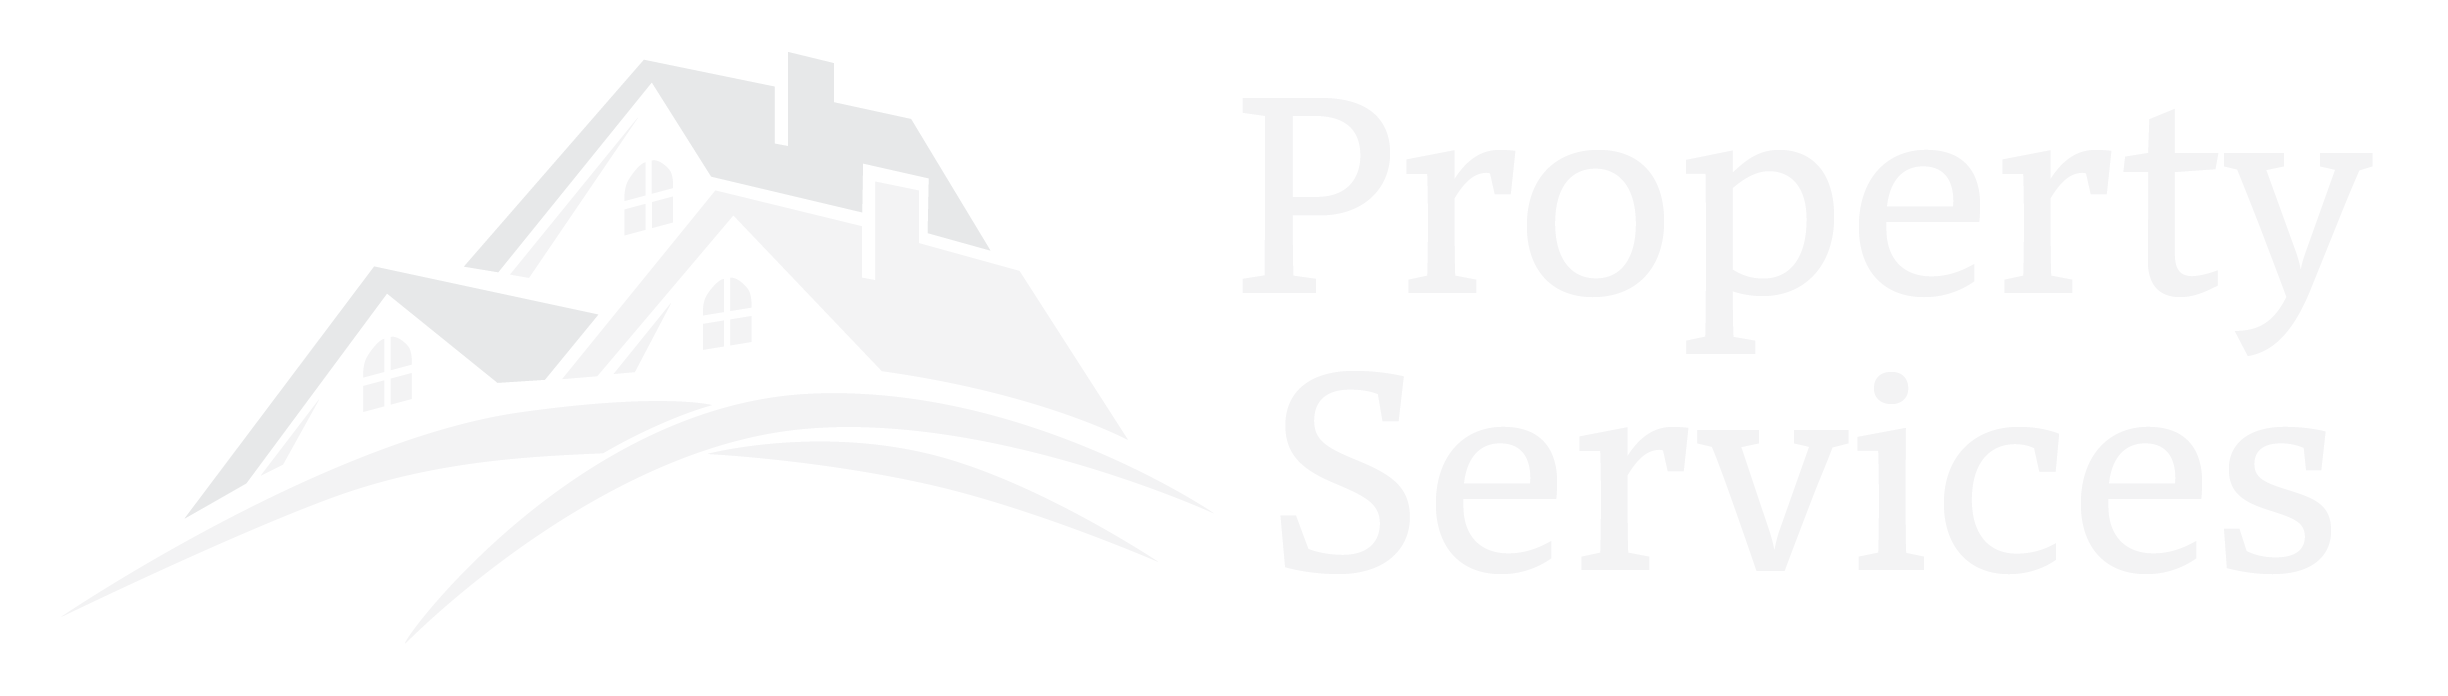 Property Services logo